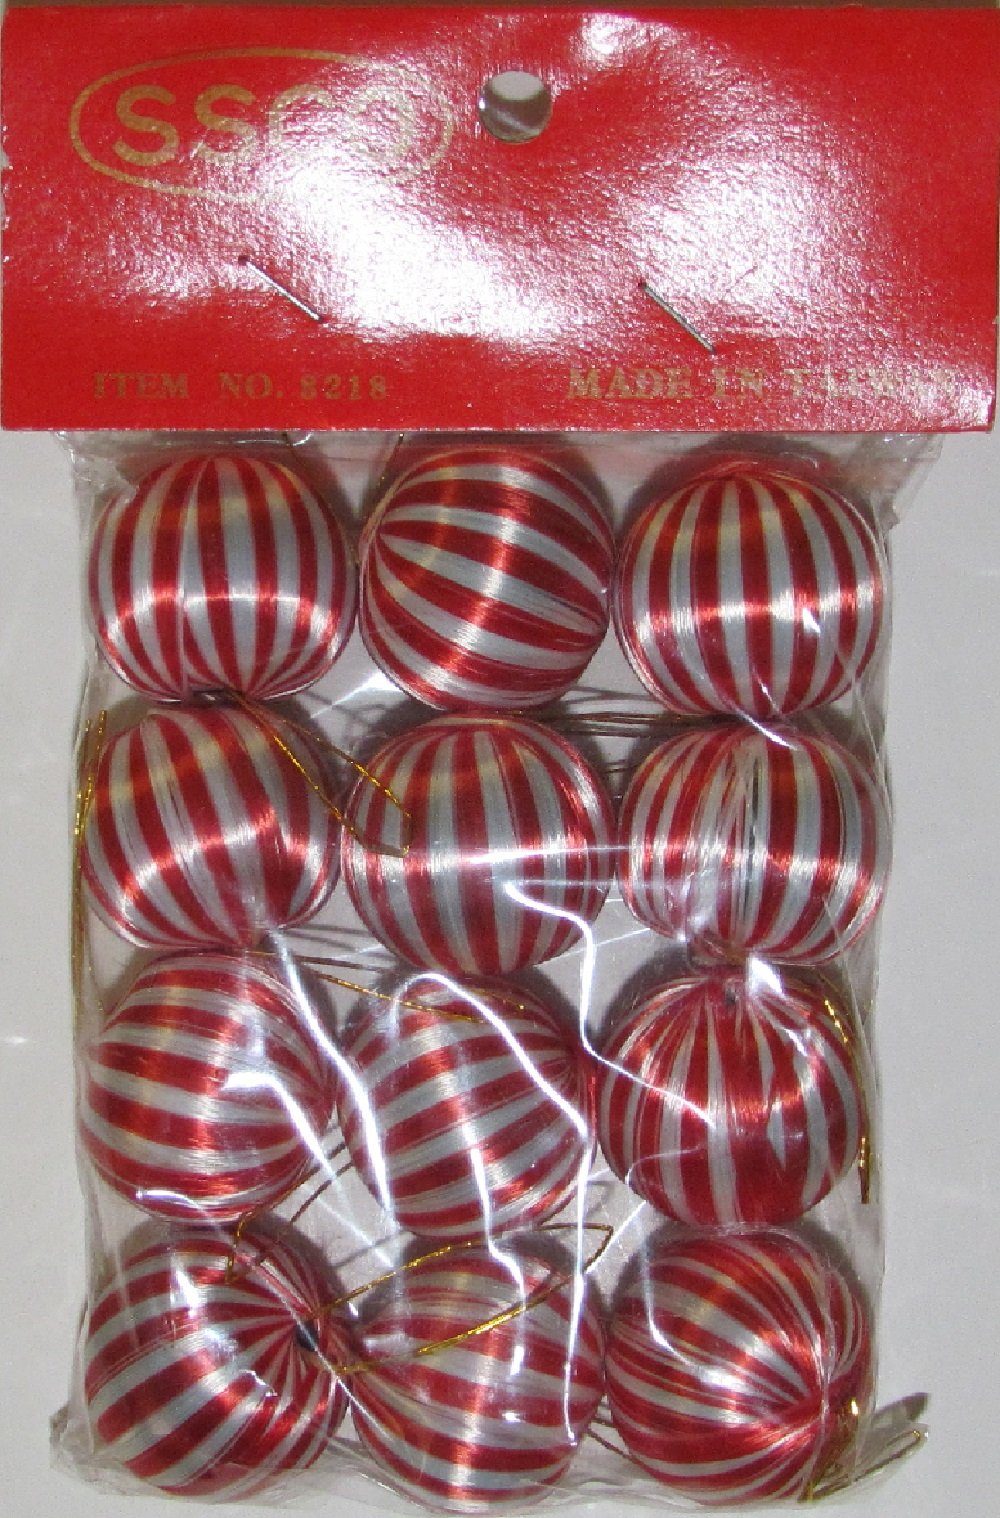 Satin balls - Peppermint - 25mm  - 12 pieces.